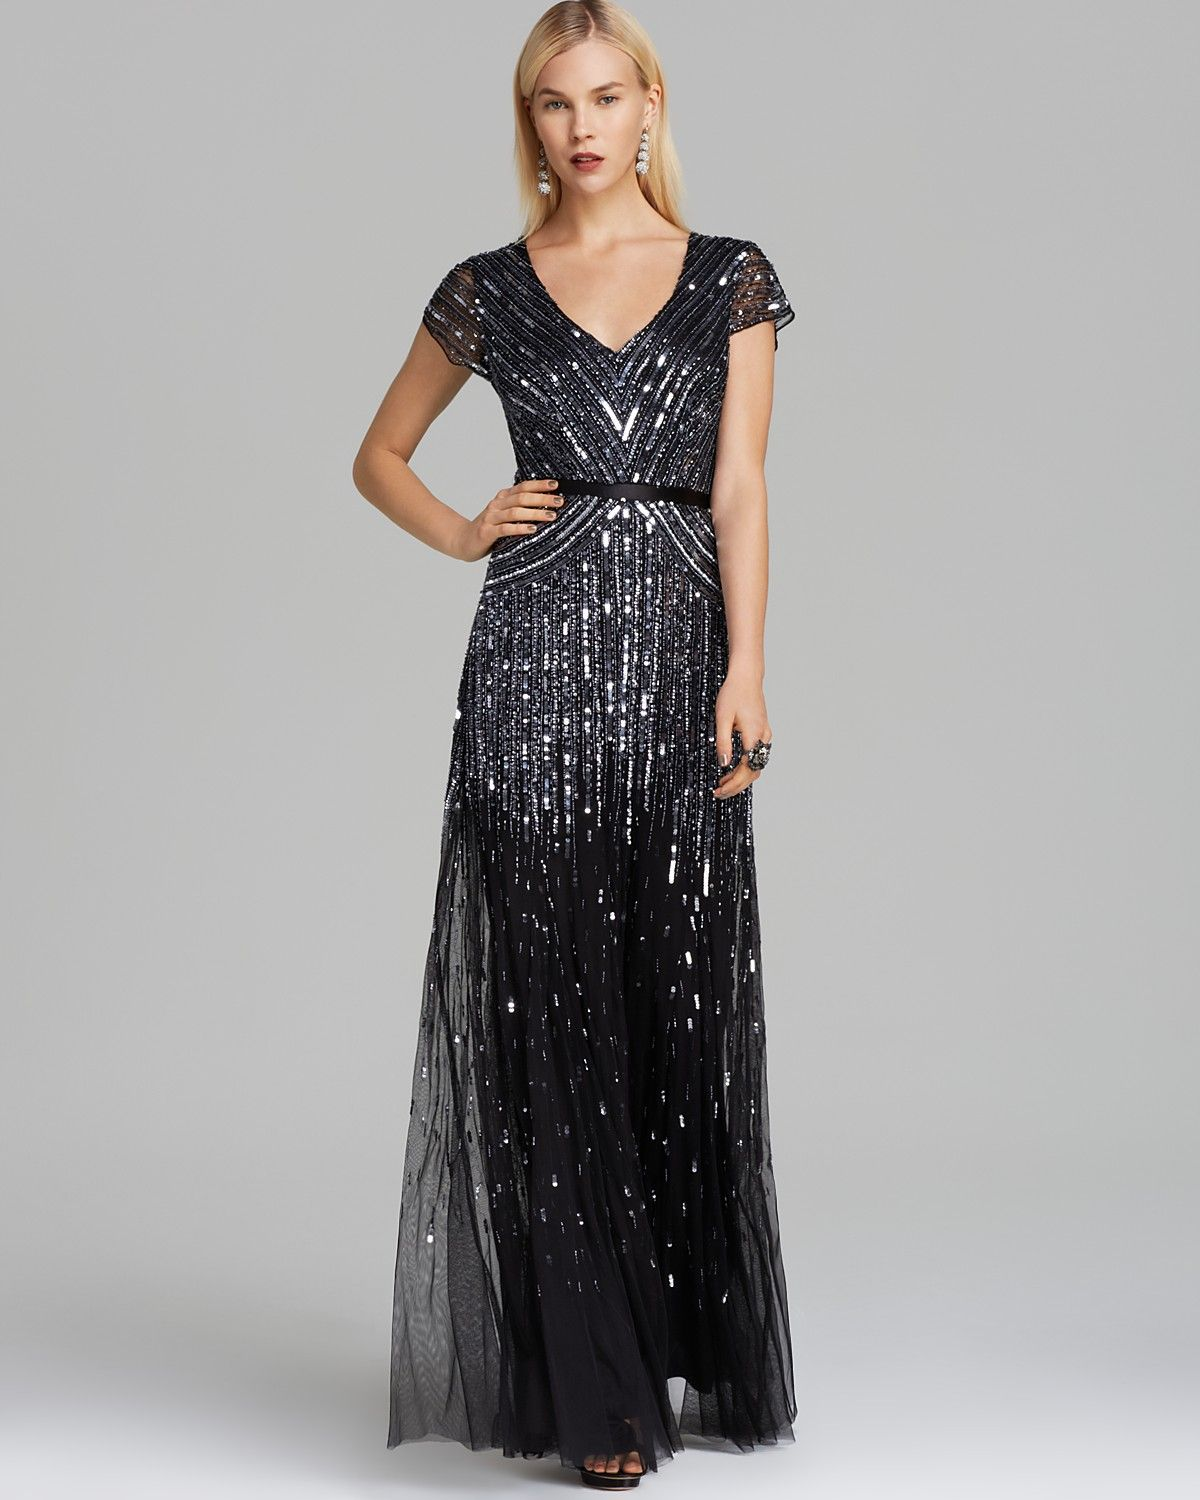 Papell cap sleeve beaded sequined gown dresses women macy s - Clothing Adrianna Papell V Neck Beaded Gown Cap Sleeve Bloomingdale S